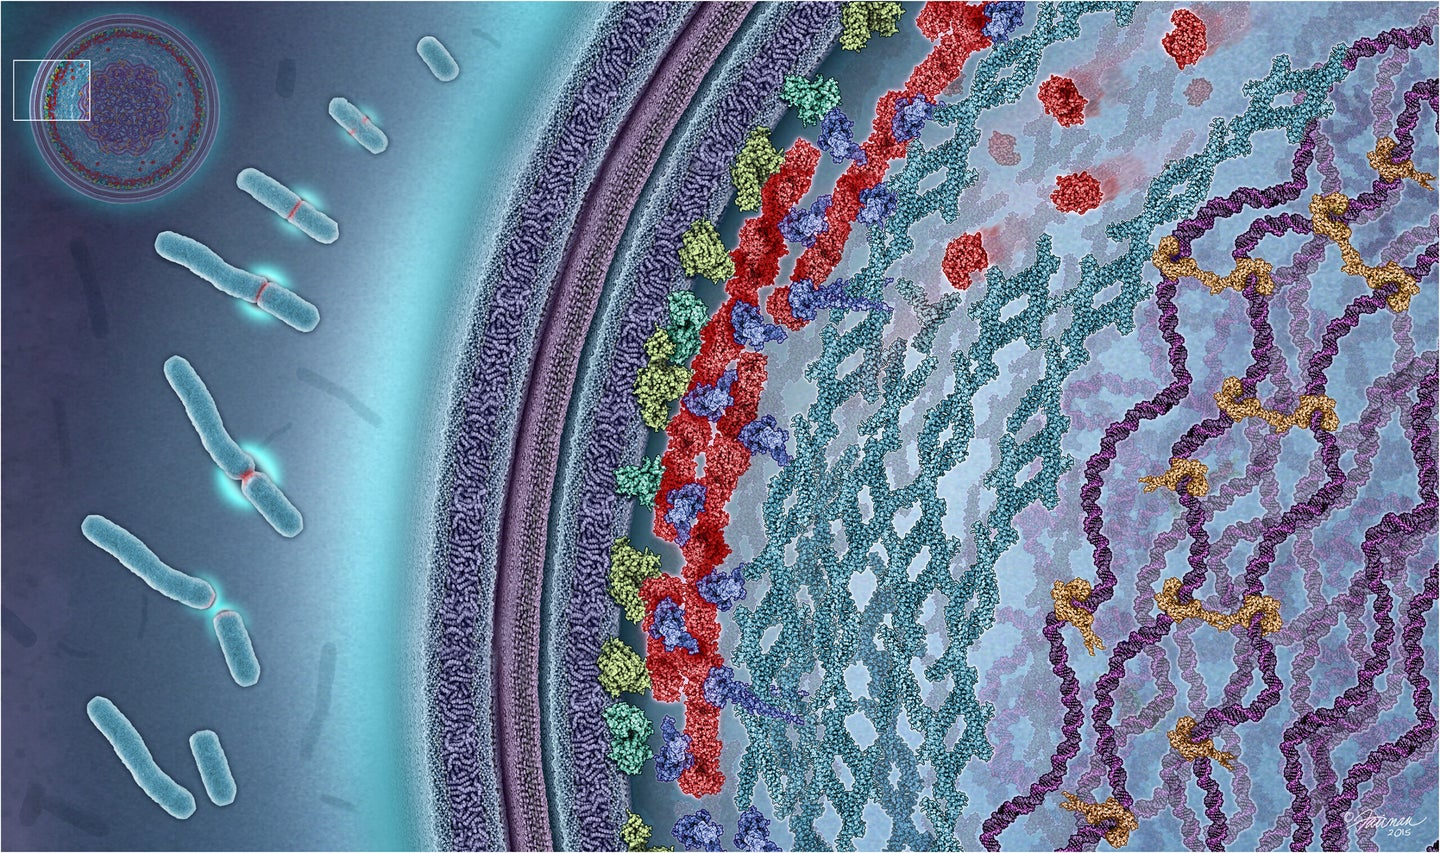 protein molecules arranging themselves to drive the e. coli bacteria to divide